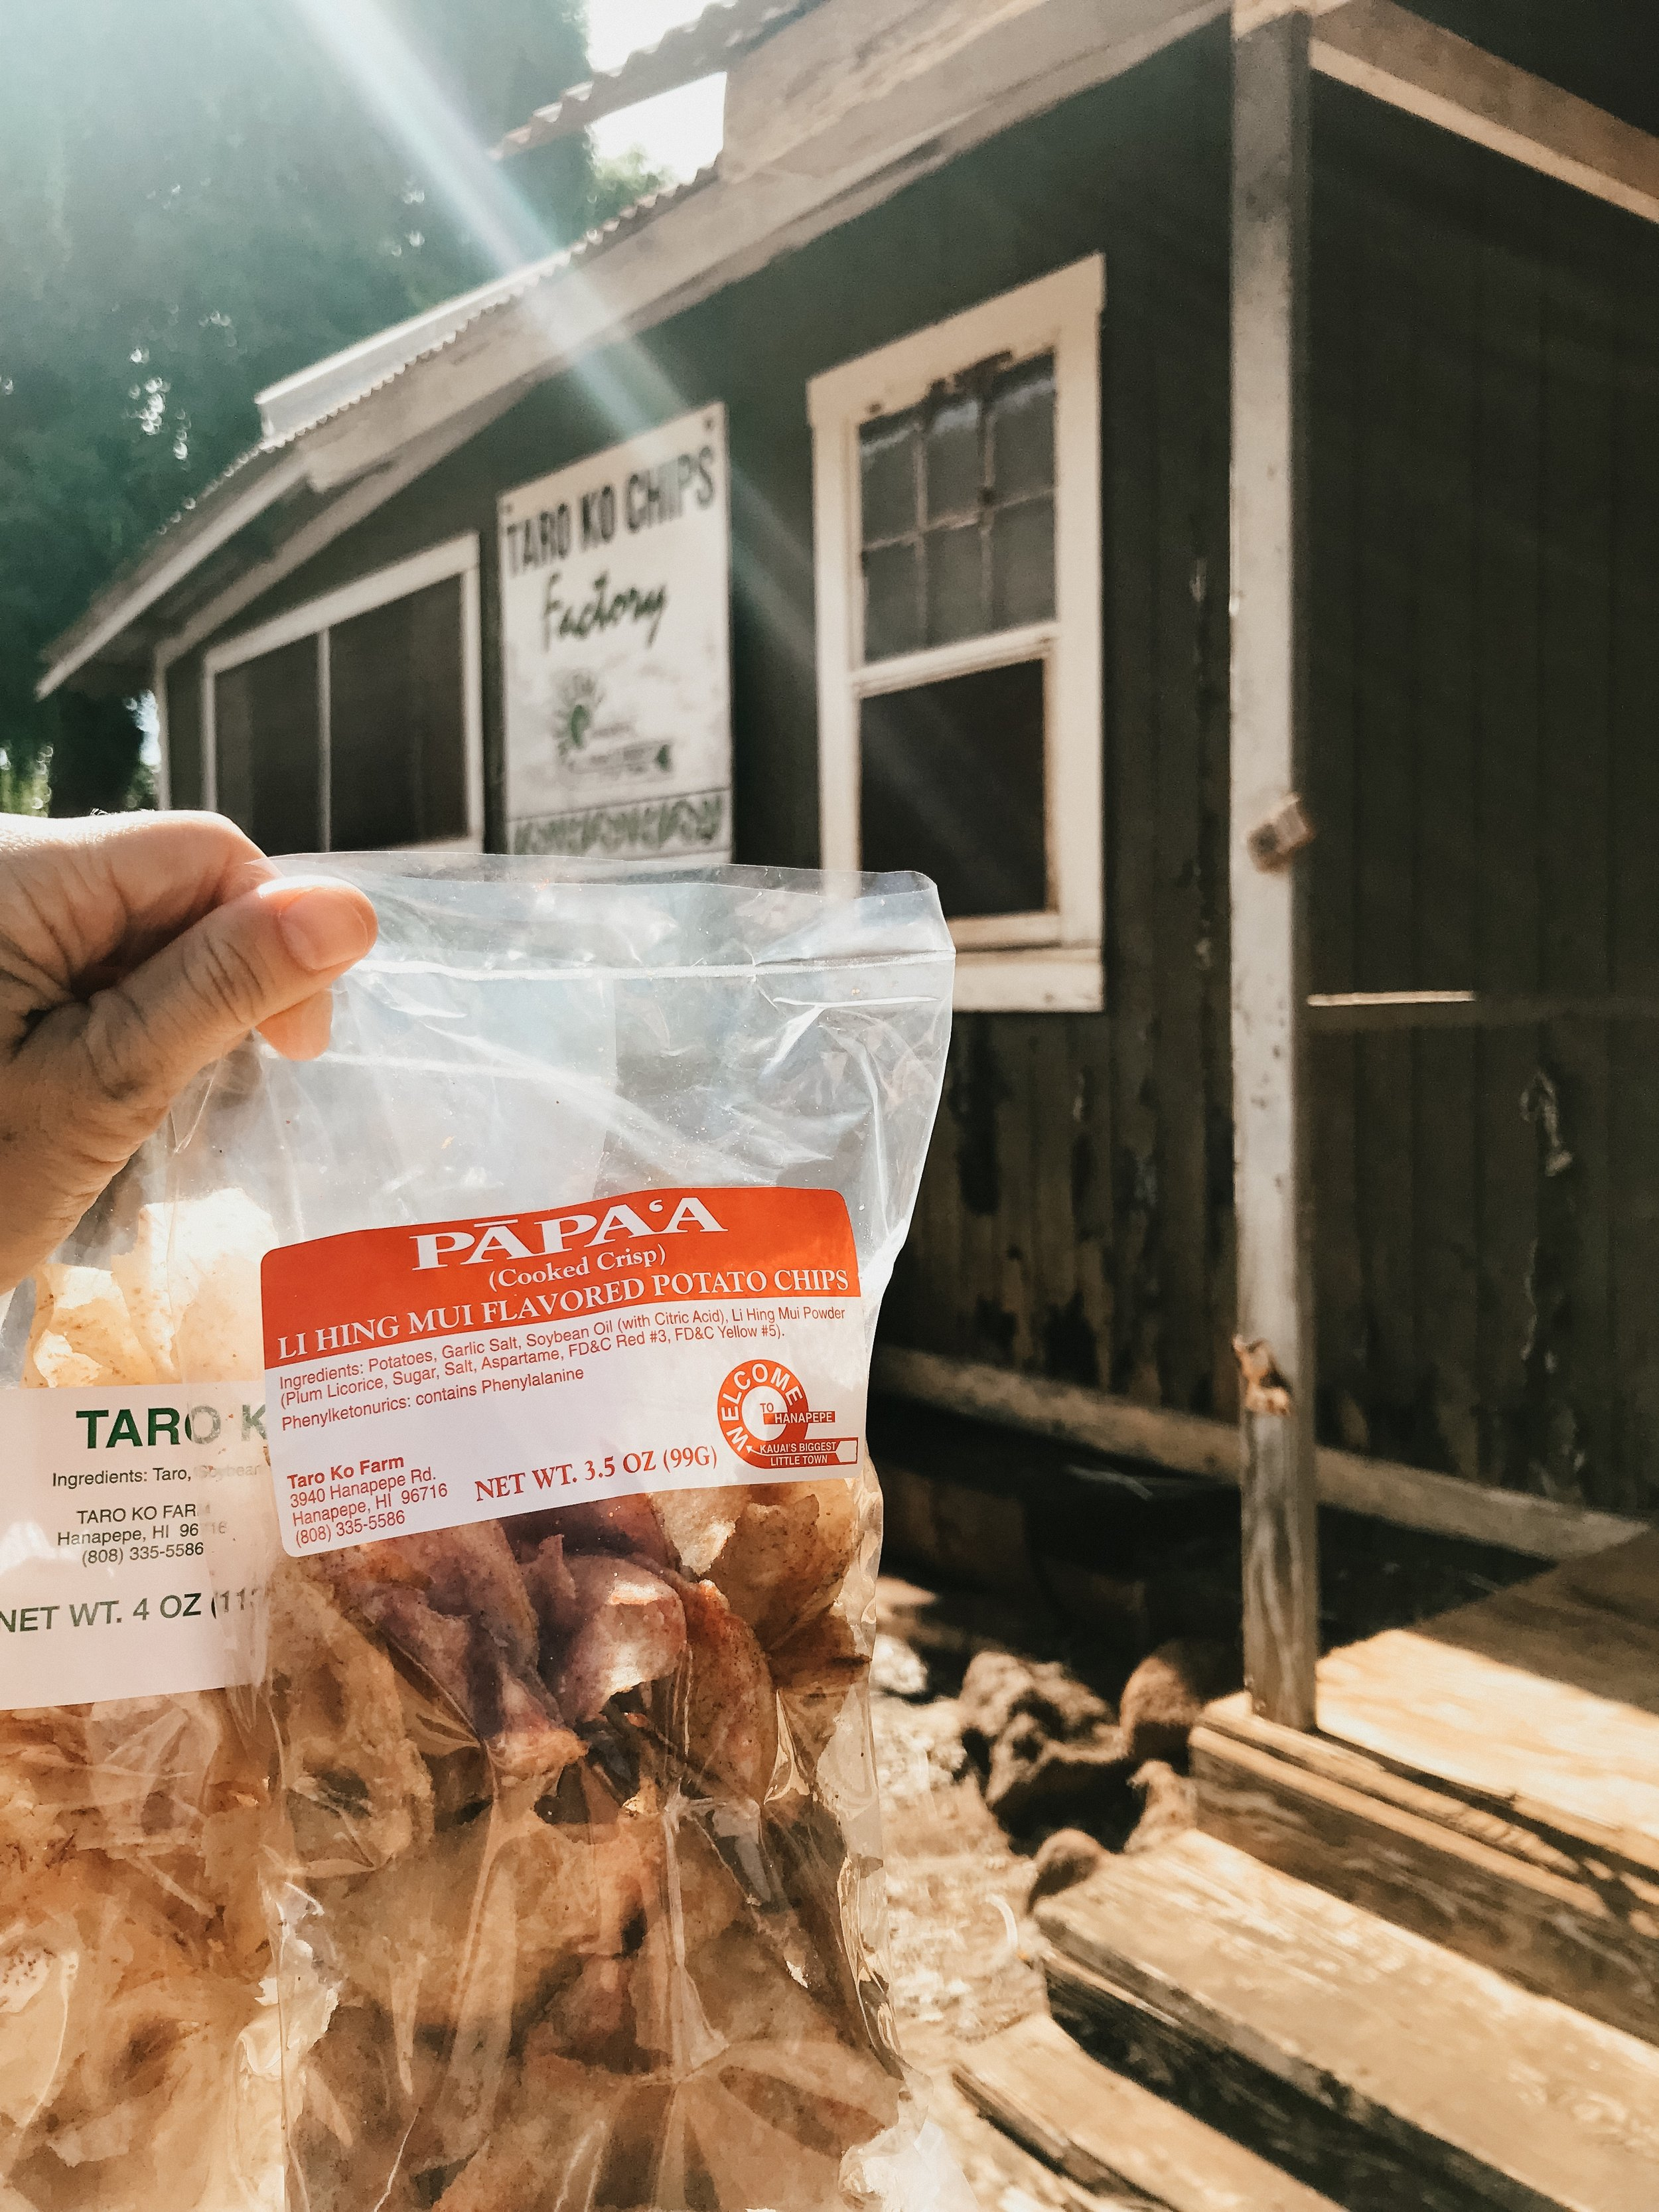 On our way back from Waimea, we stopped in Hanapepe to grab a few bags of taro chips from a hidden gem known as Chips and Dale.